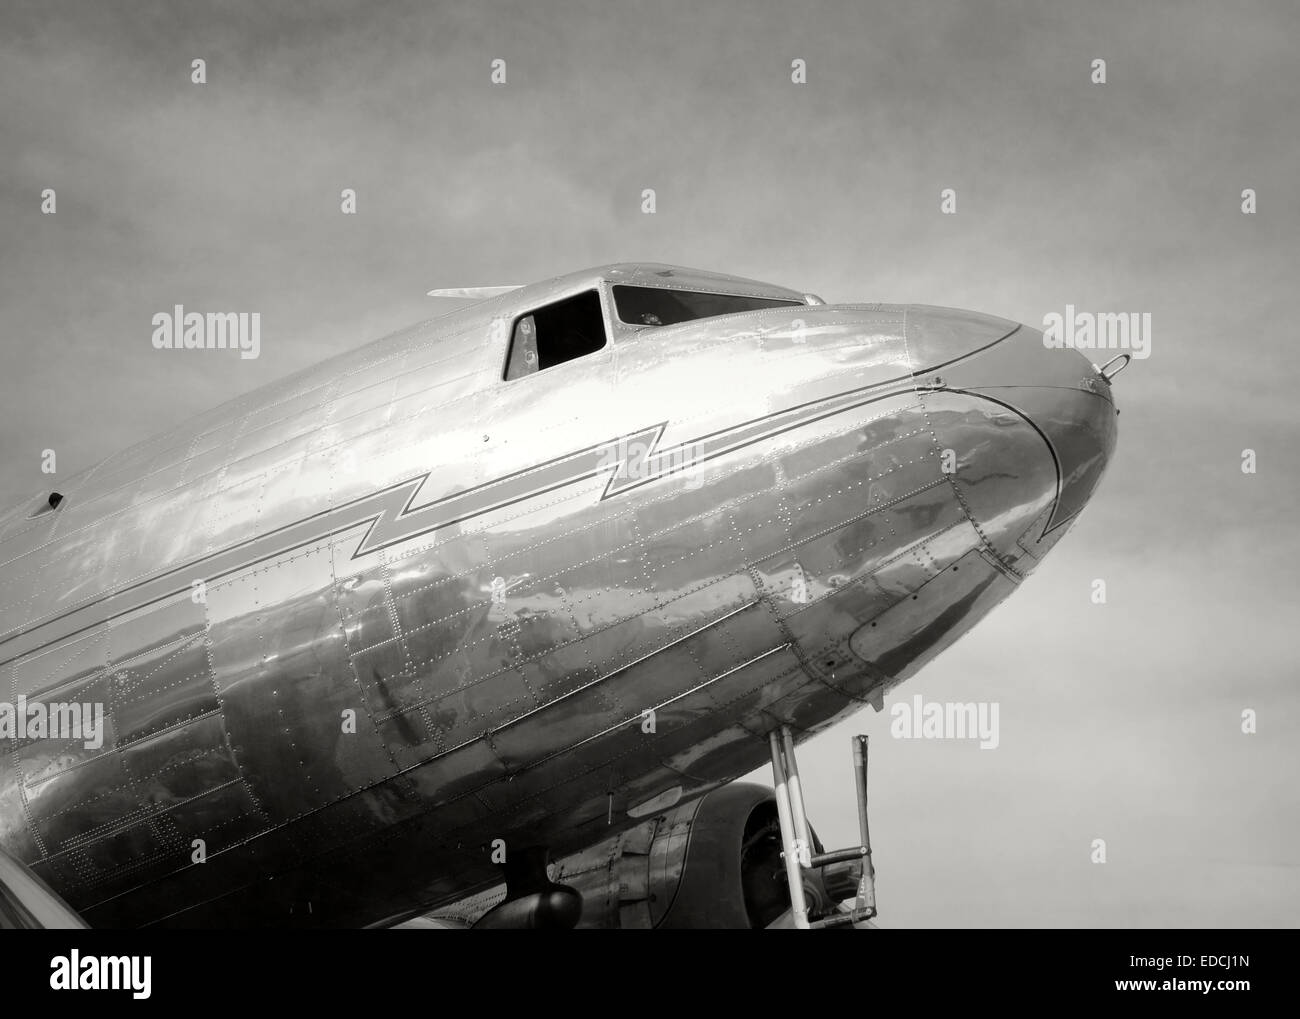 Old DC-3 propeller airplane in black and white - Stock Image